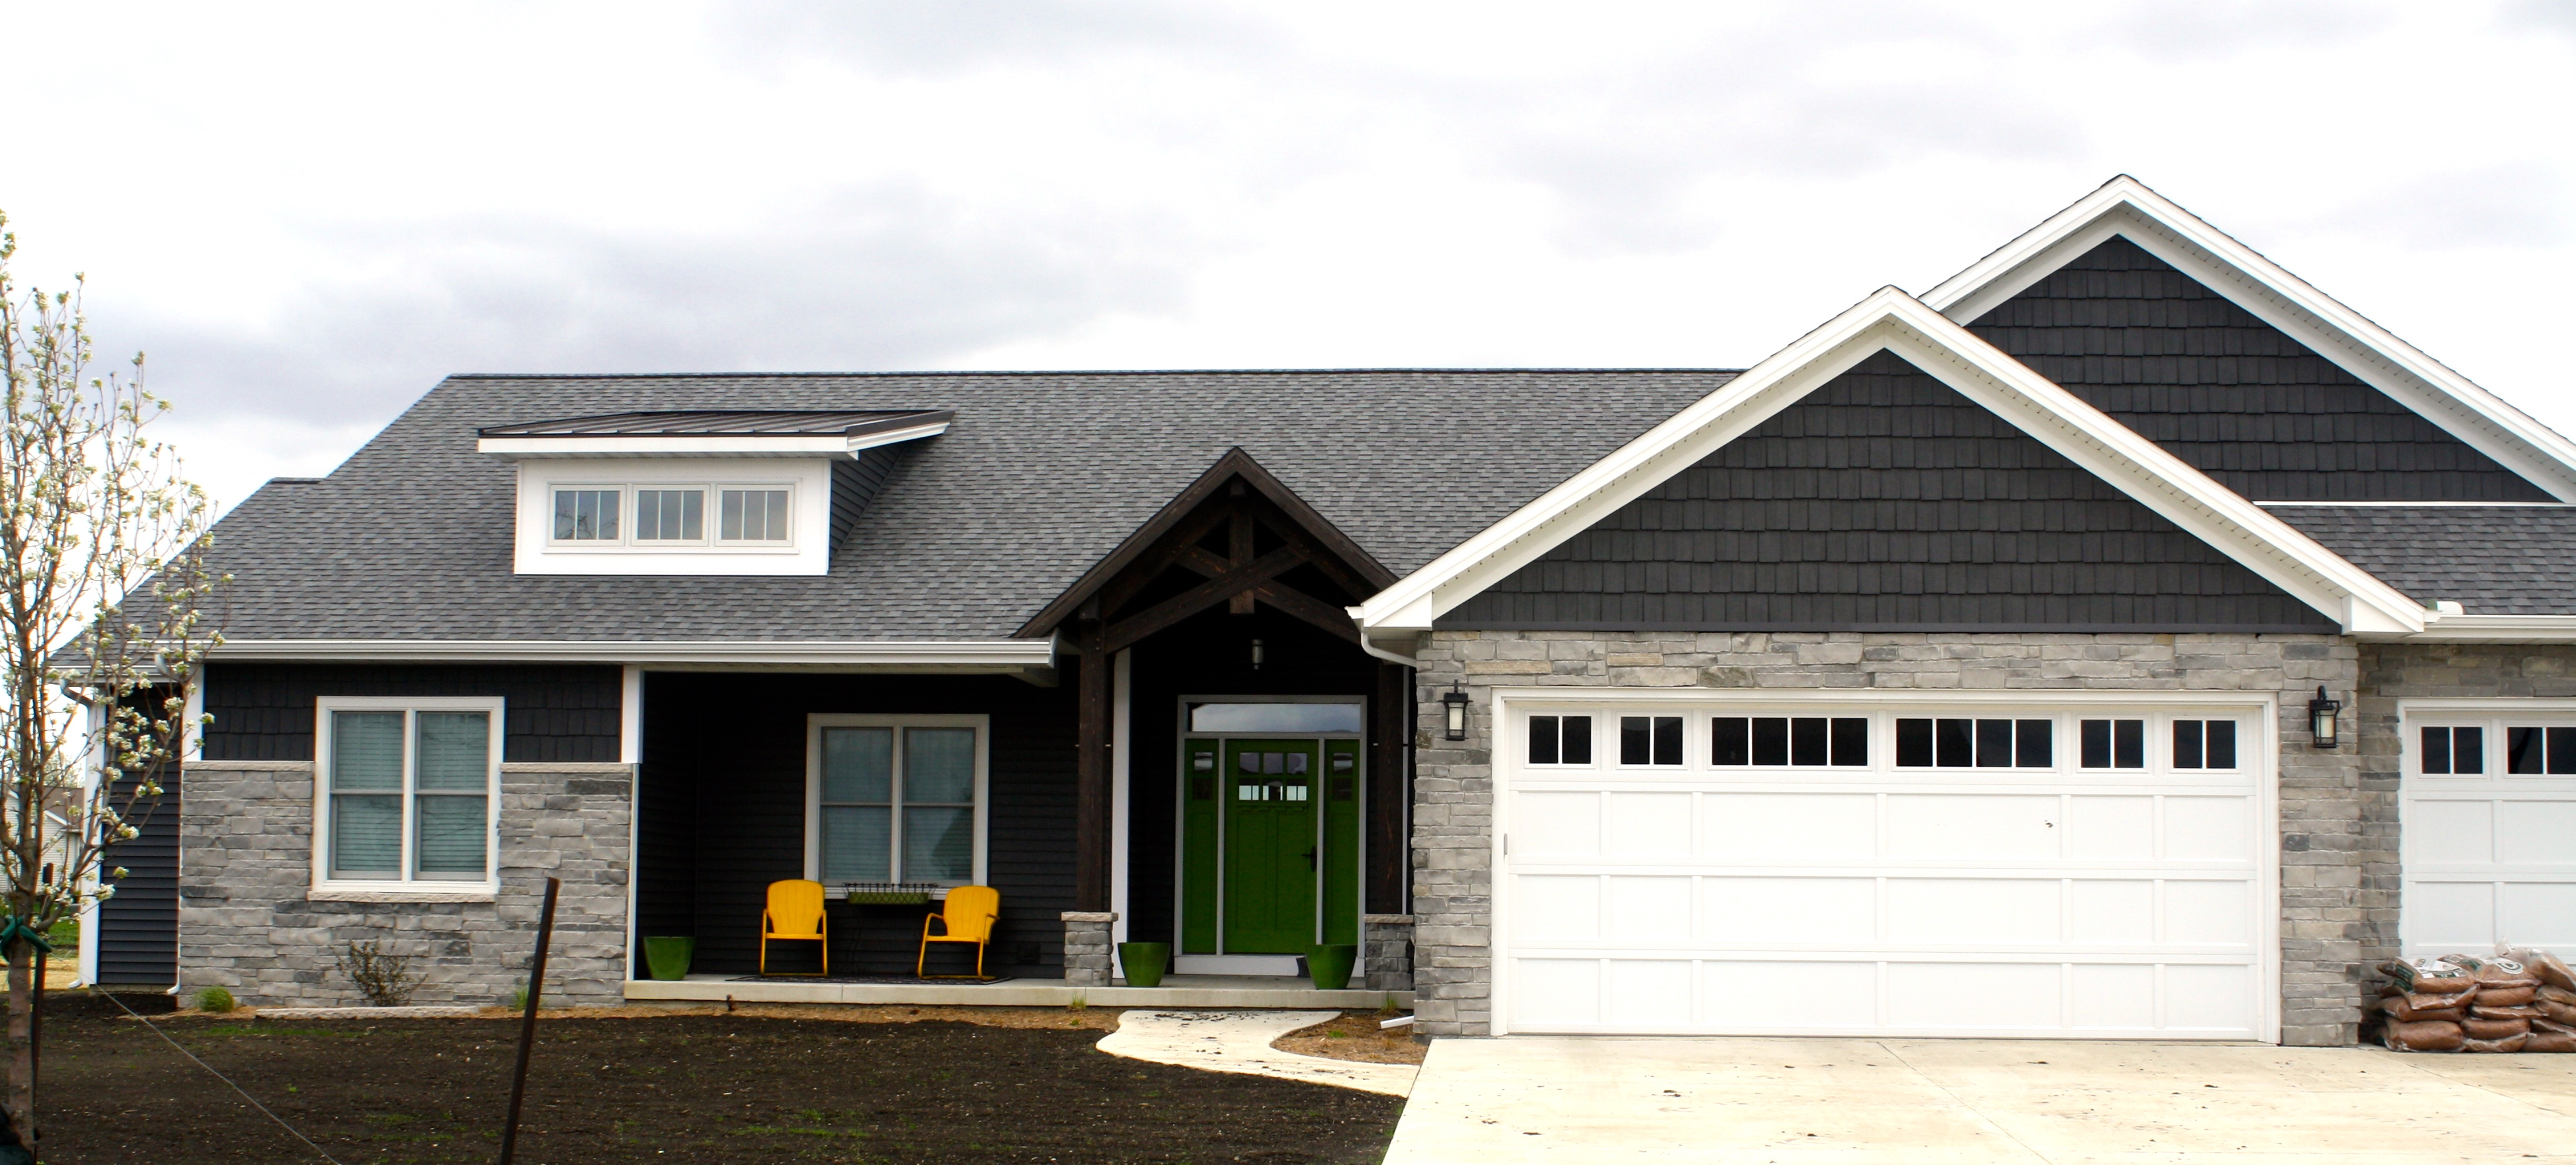 Ironstone Dark Grey Siding With Pewter Grey Shingles And White Trim